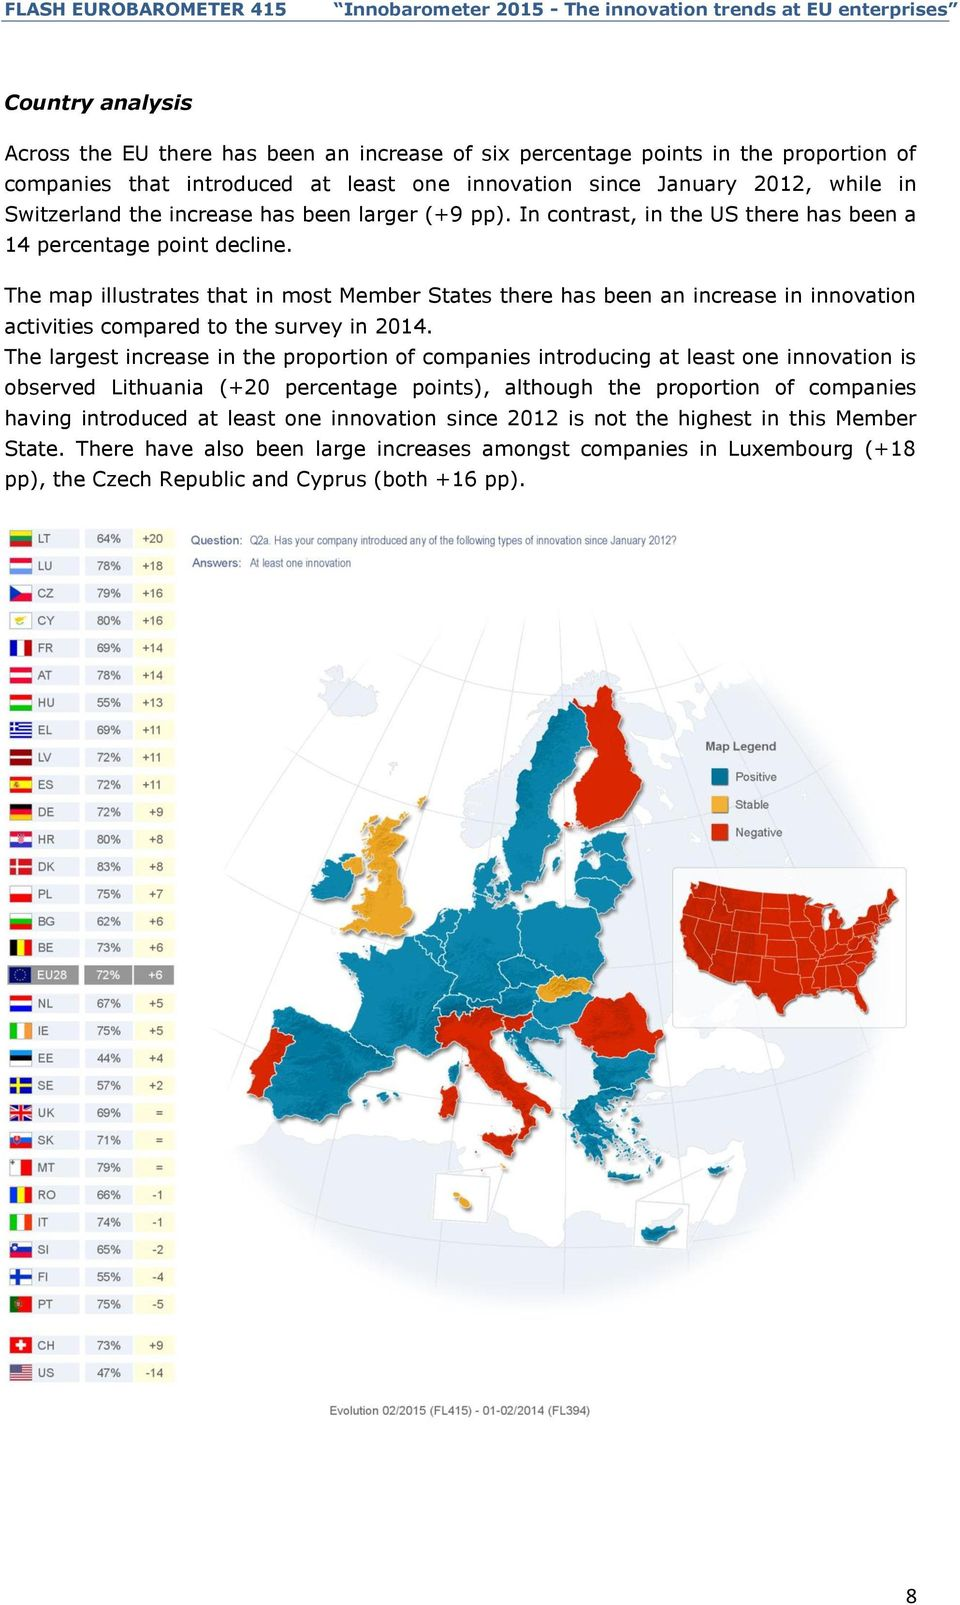 The map illustrates that in most Member States there has been an increase in innovation activities compared to the survey in 2014.